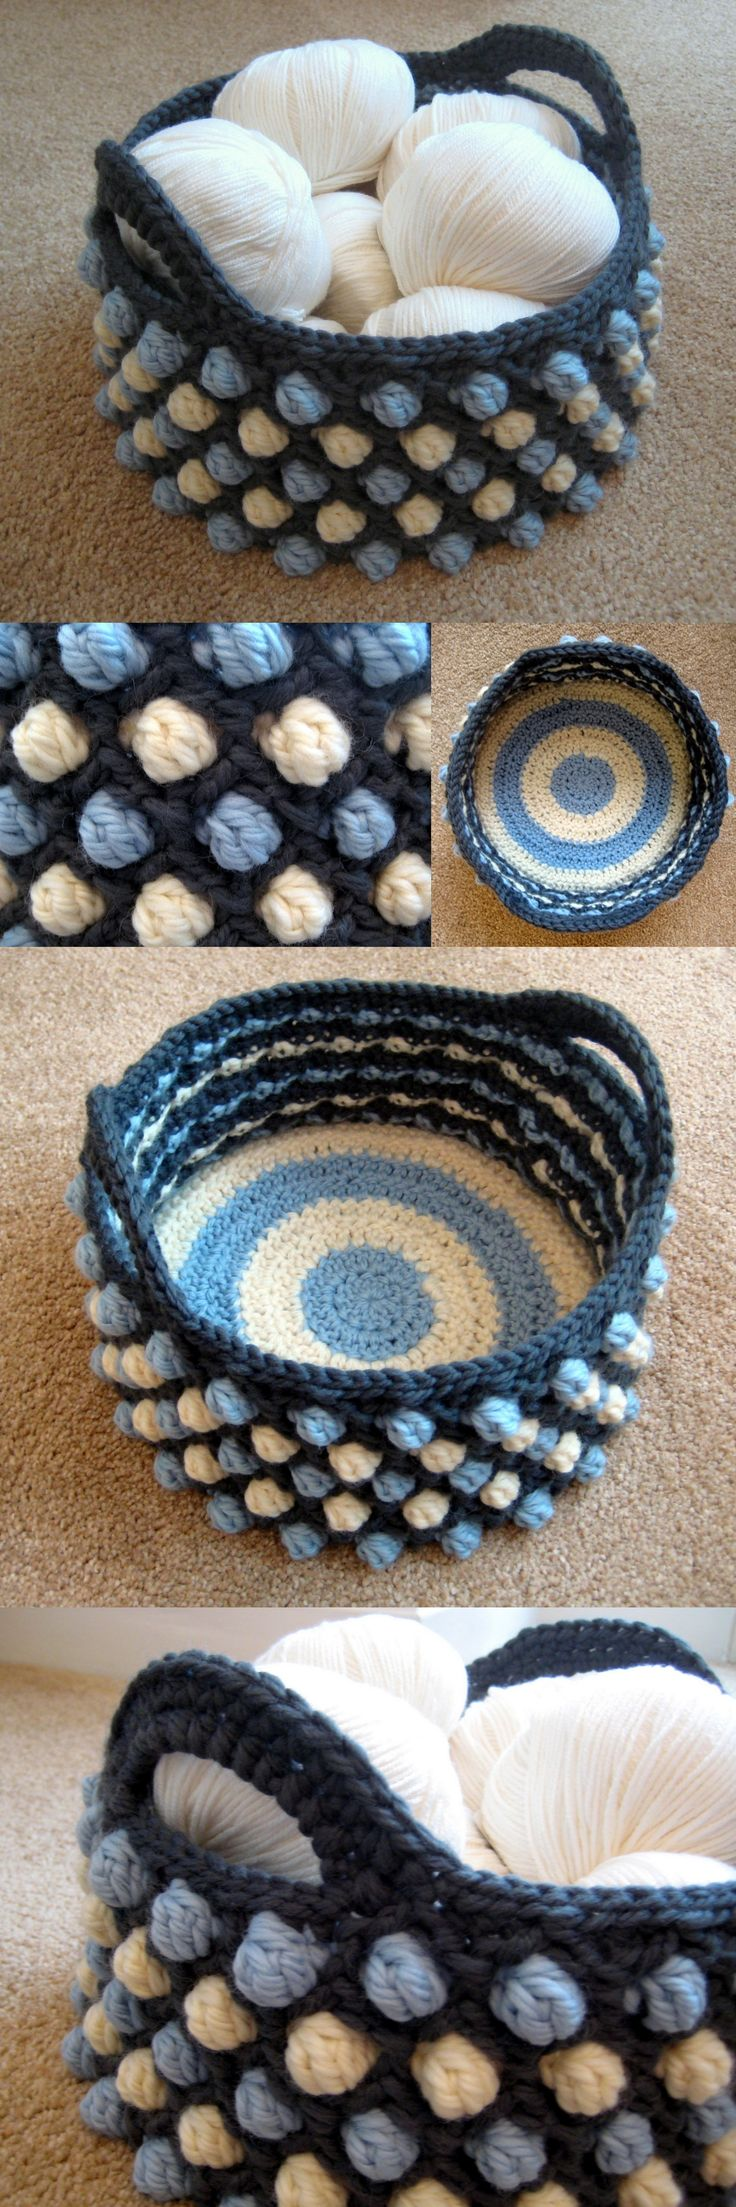 Best 25 Crochet Basket Pattern Ideas On Pinterest Crocheting Crochet Home Decor And Crochet